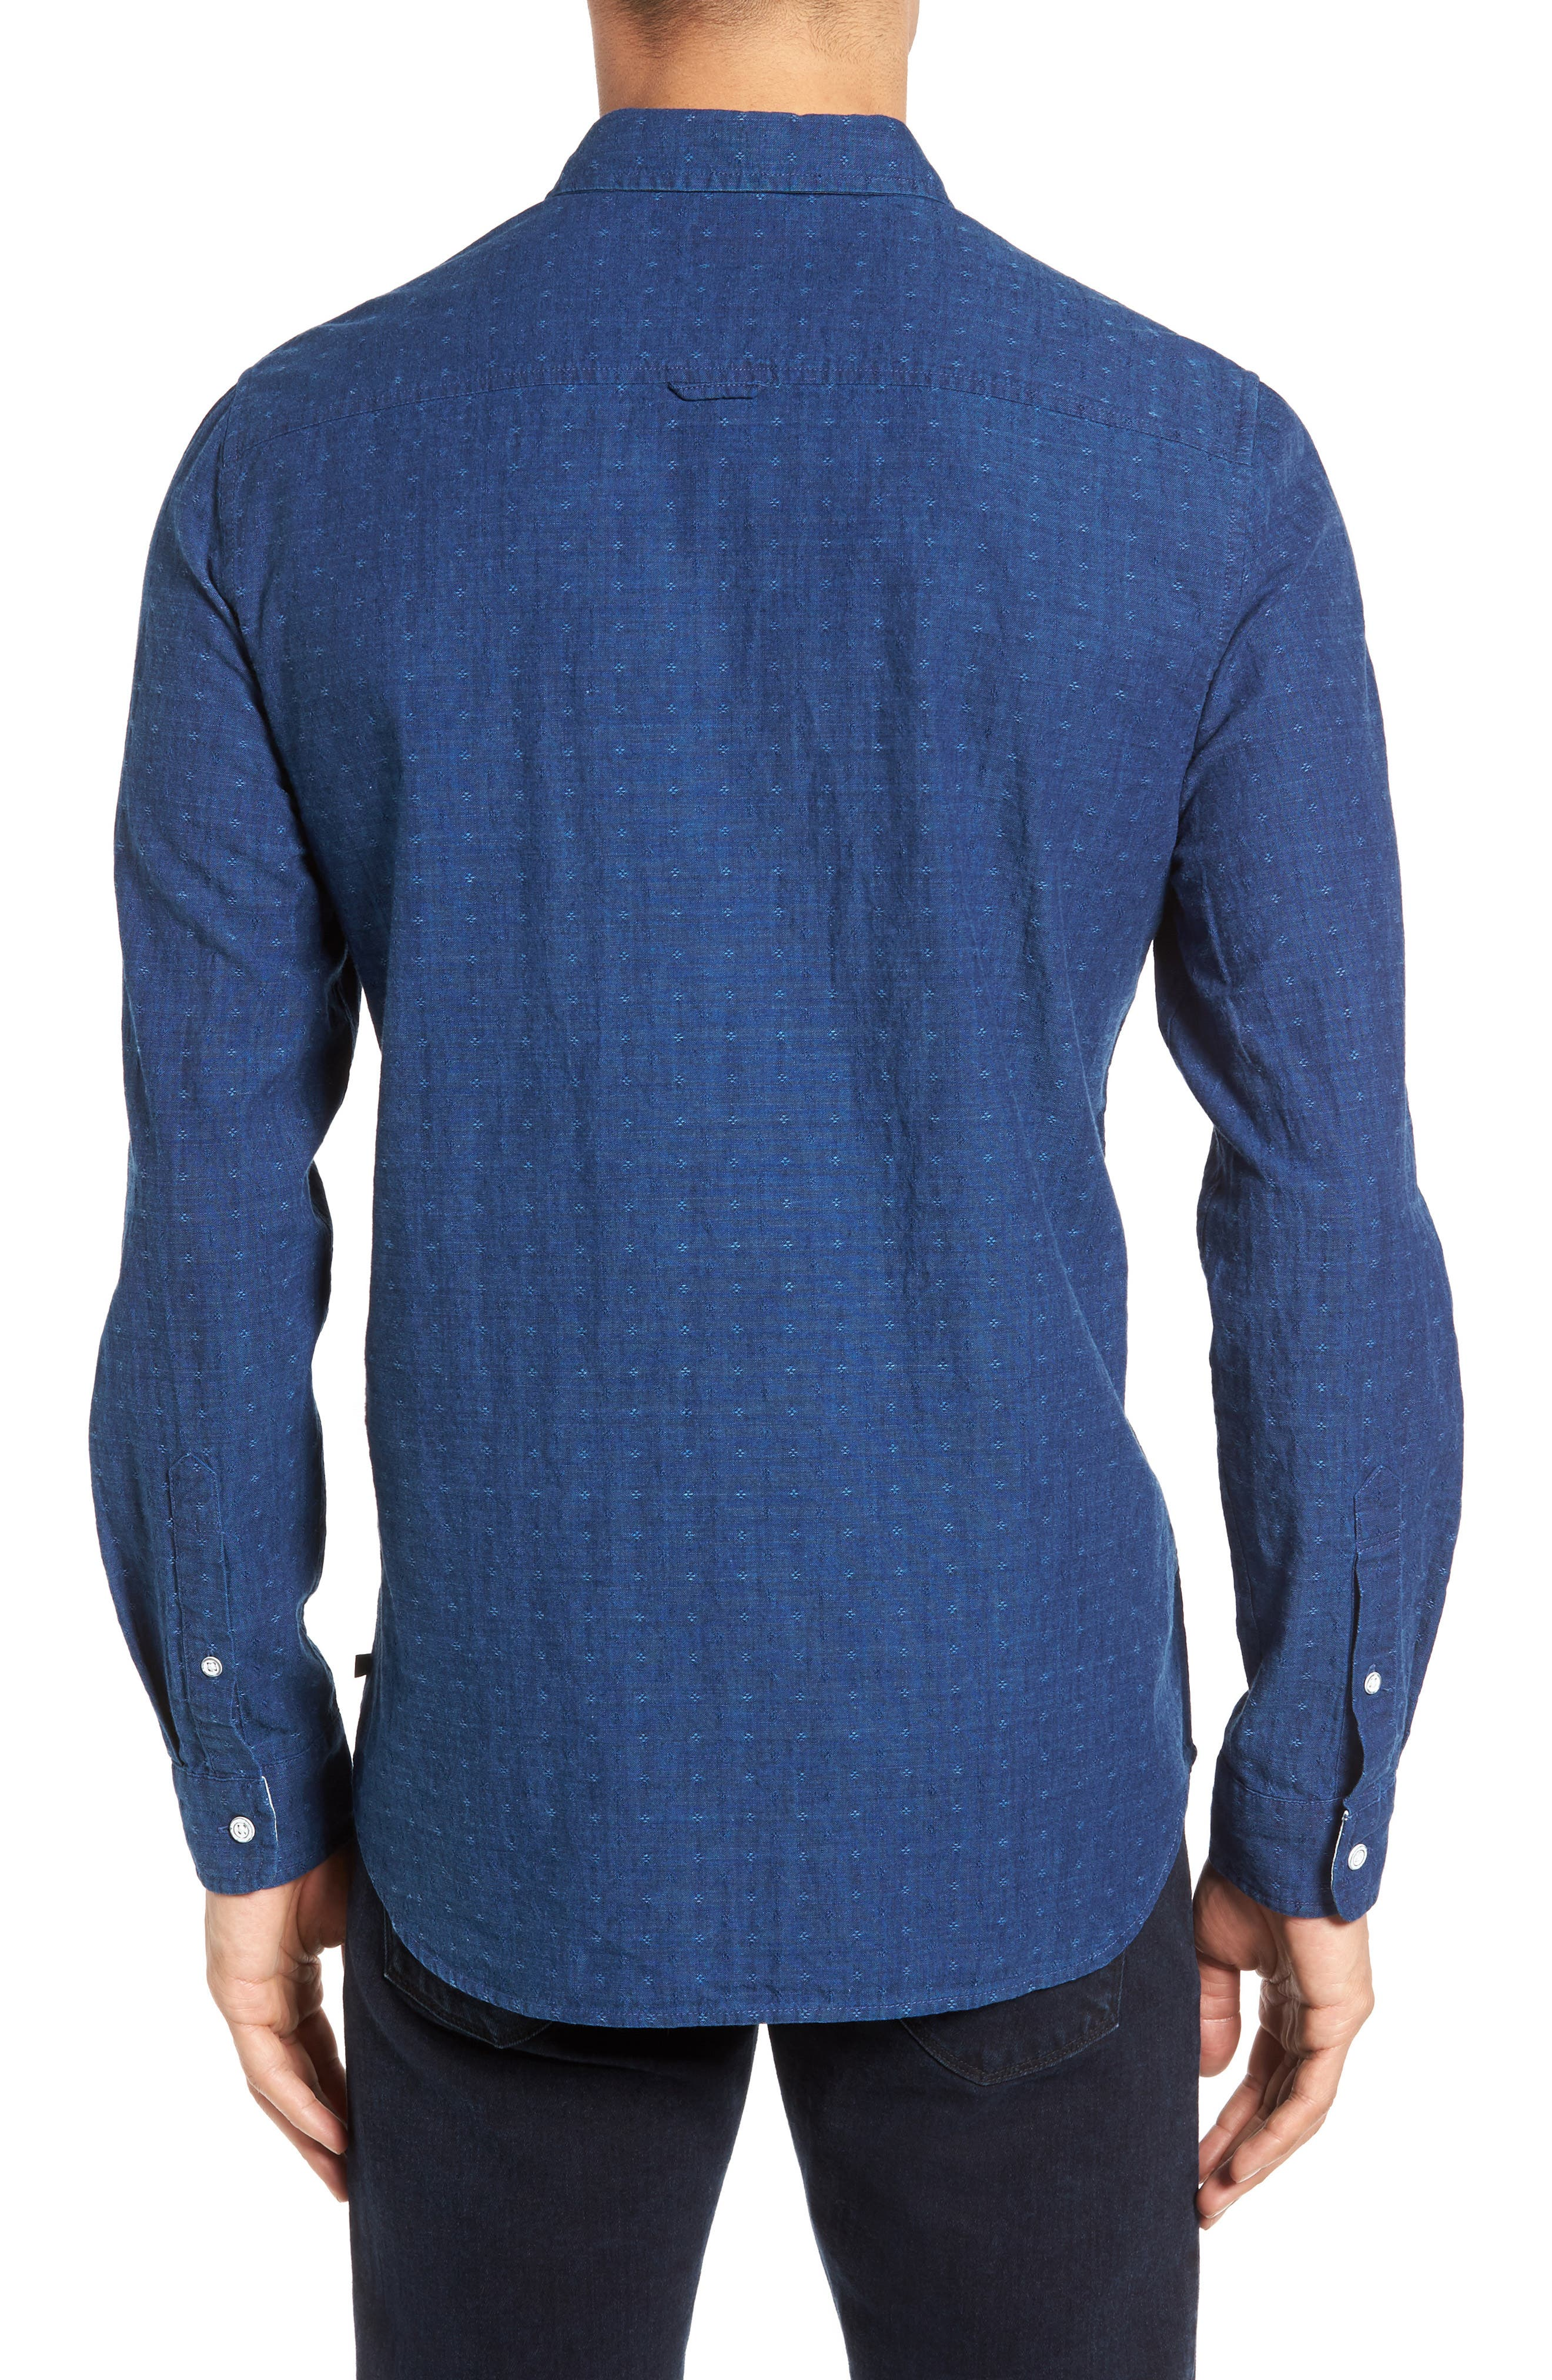 Grady Trim Fit Jacquard Sport Shirt,                             Alternate thumbnail 2, color,                             Washed Indigo